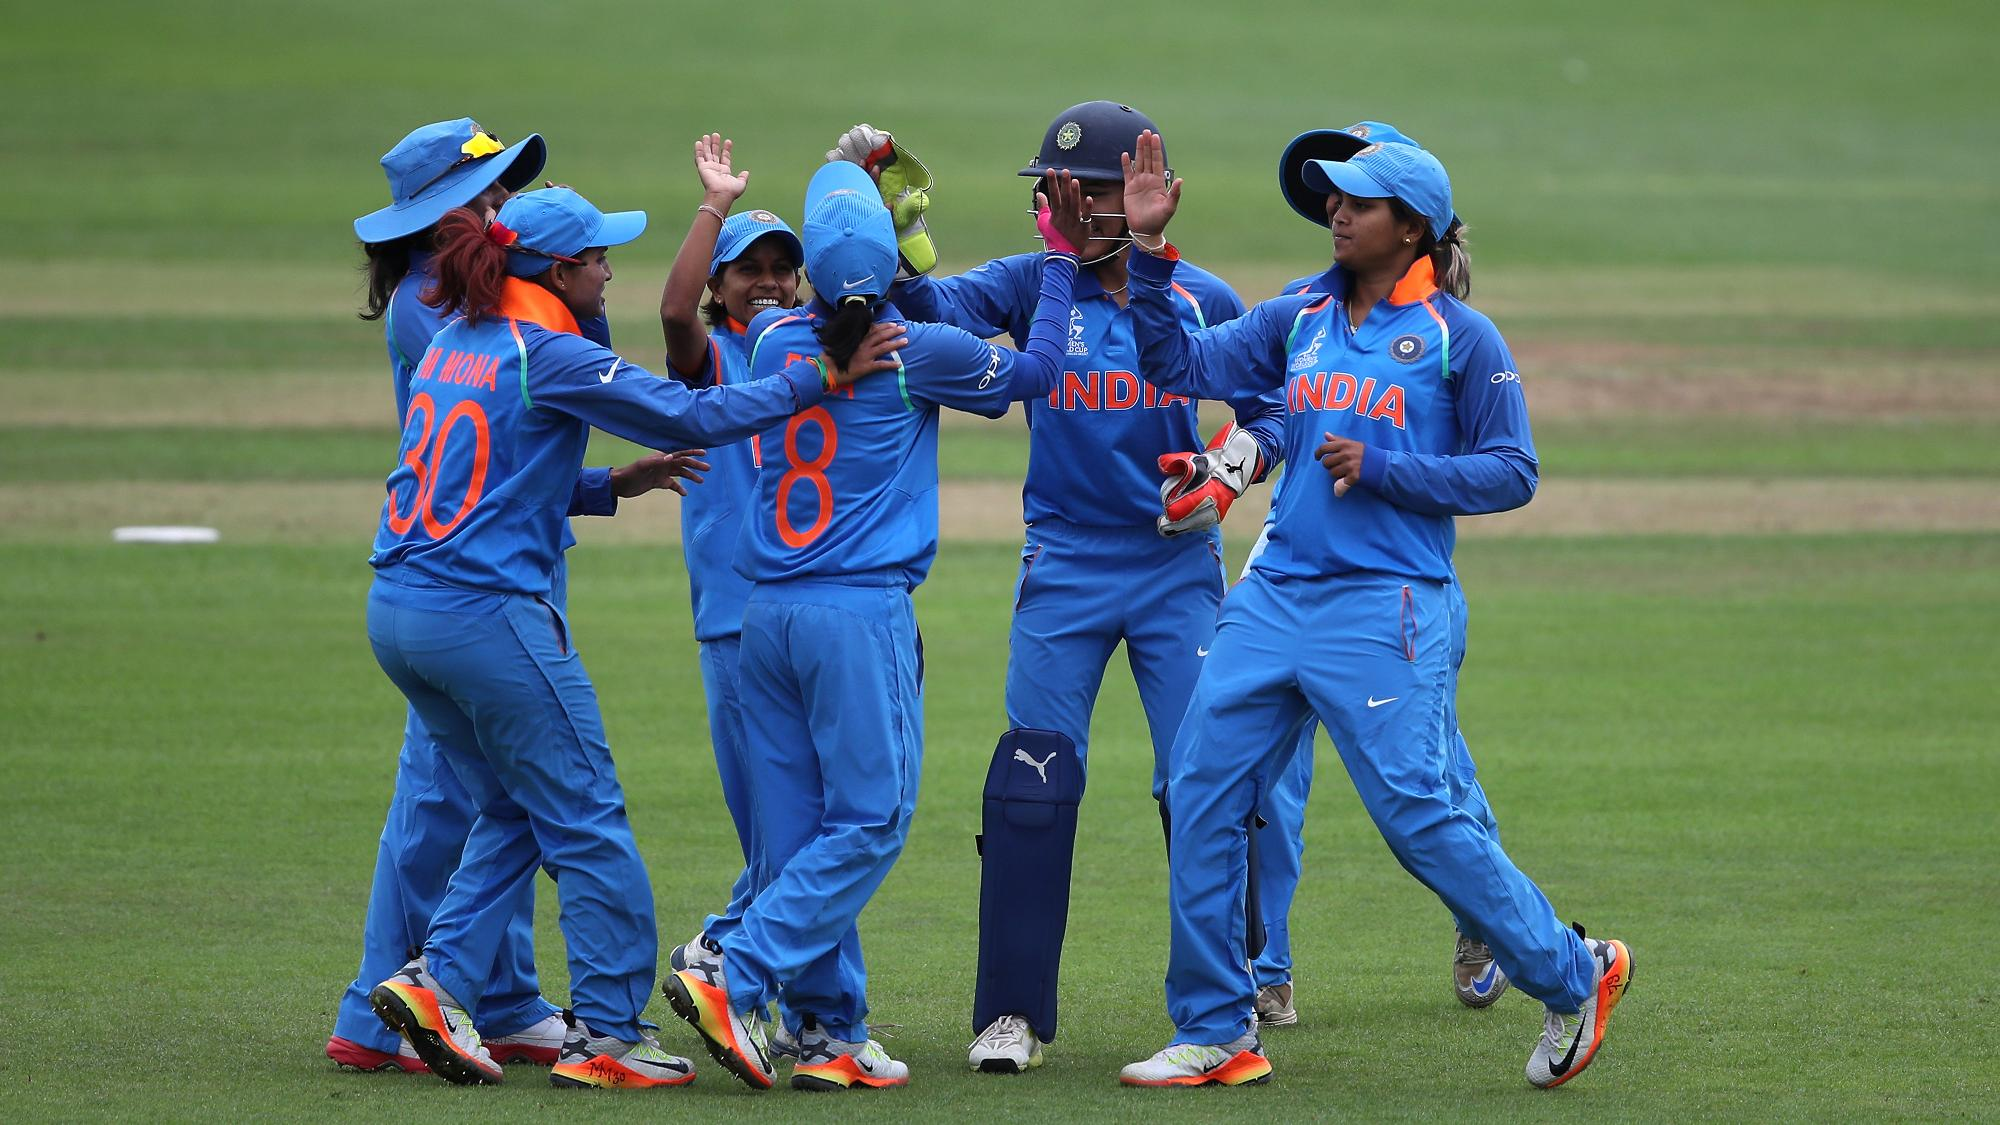 BCCI Confirms! Get reedy for Women T-20 team IPL